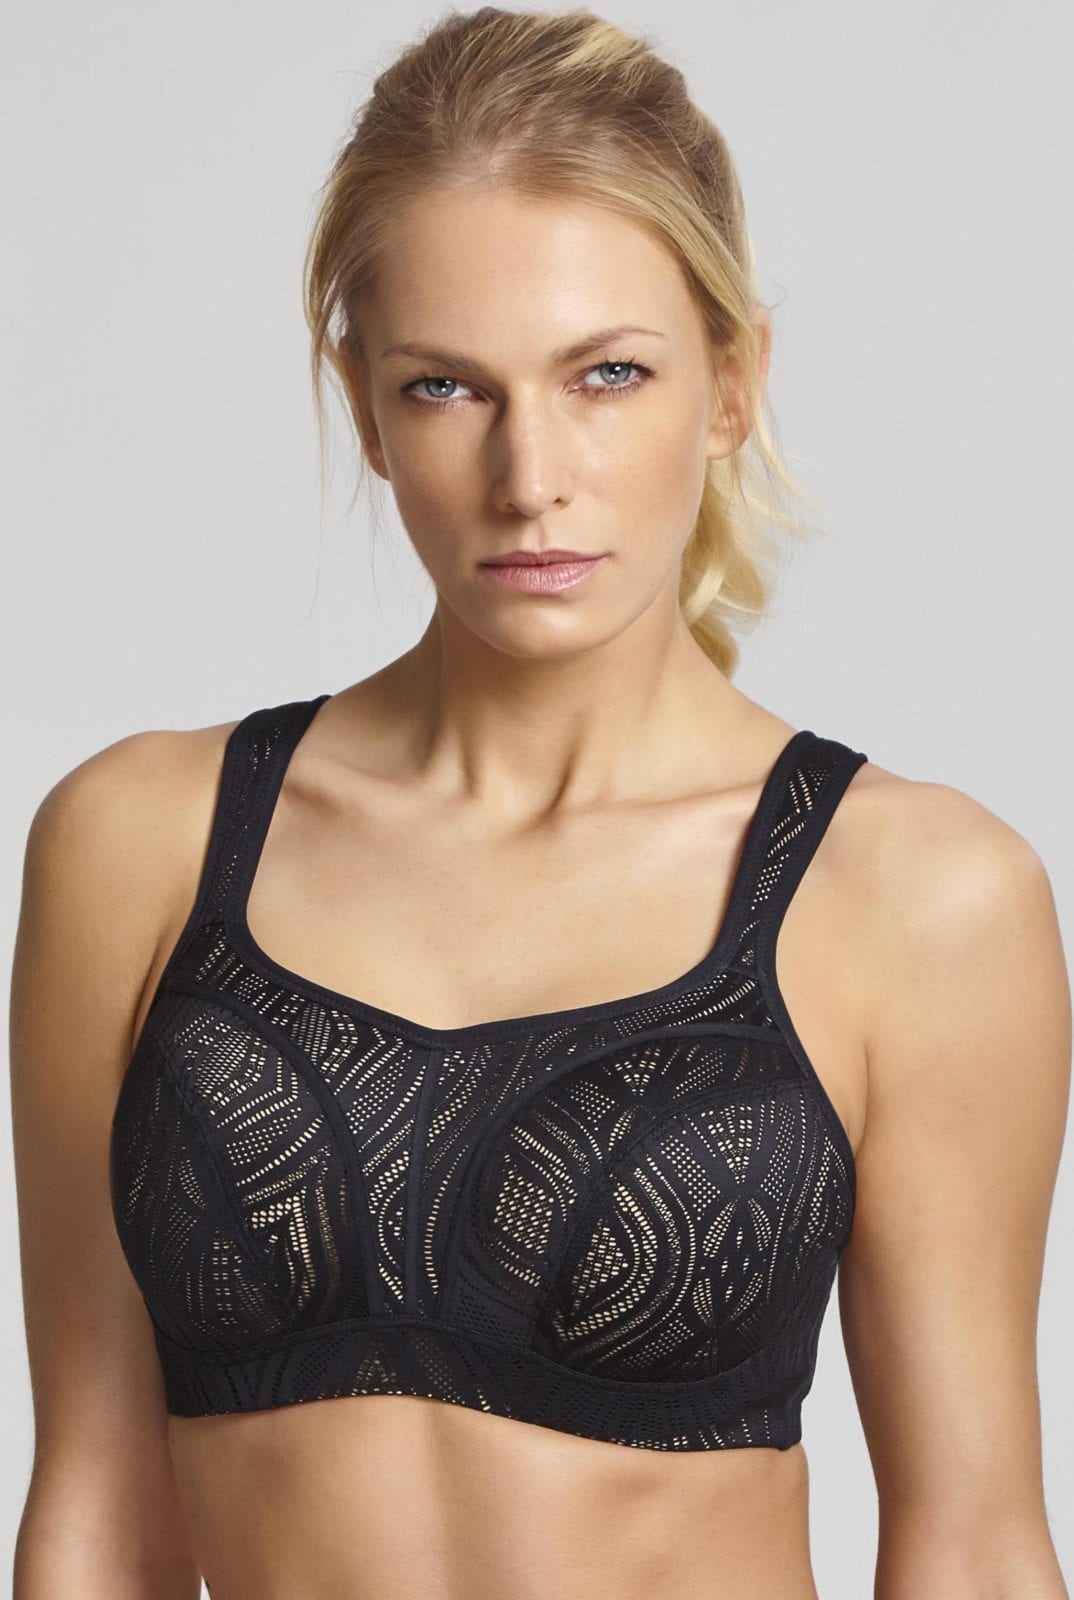 Спорт бра на косточках 5021C_471_Wired Sports Bra Black Latte Front Trade 1